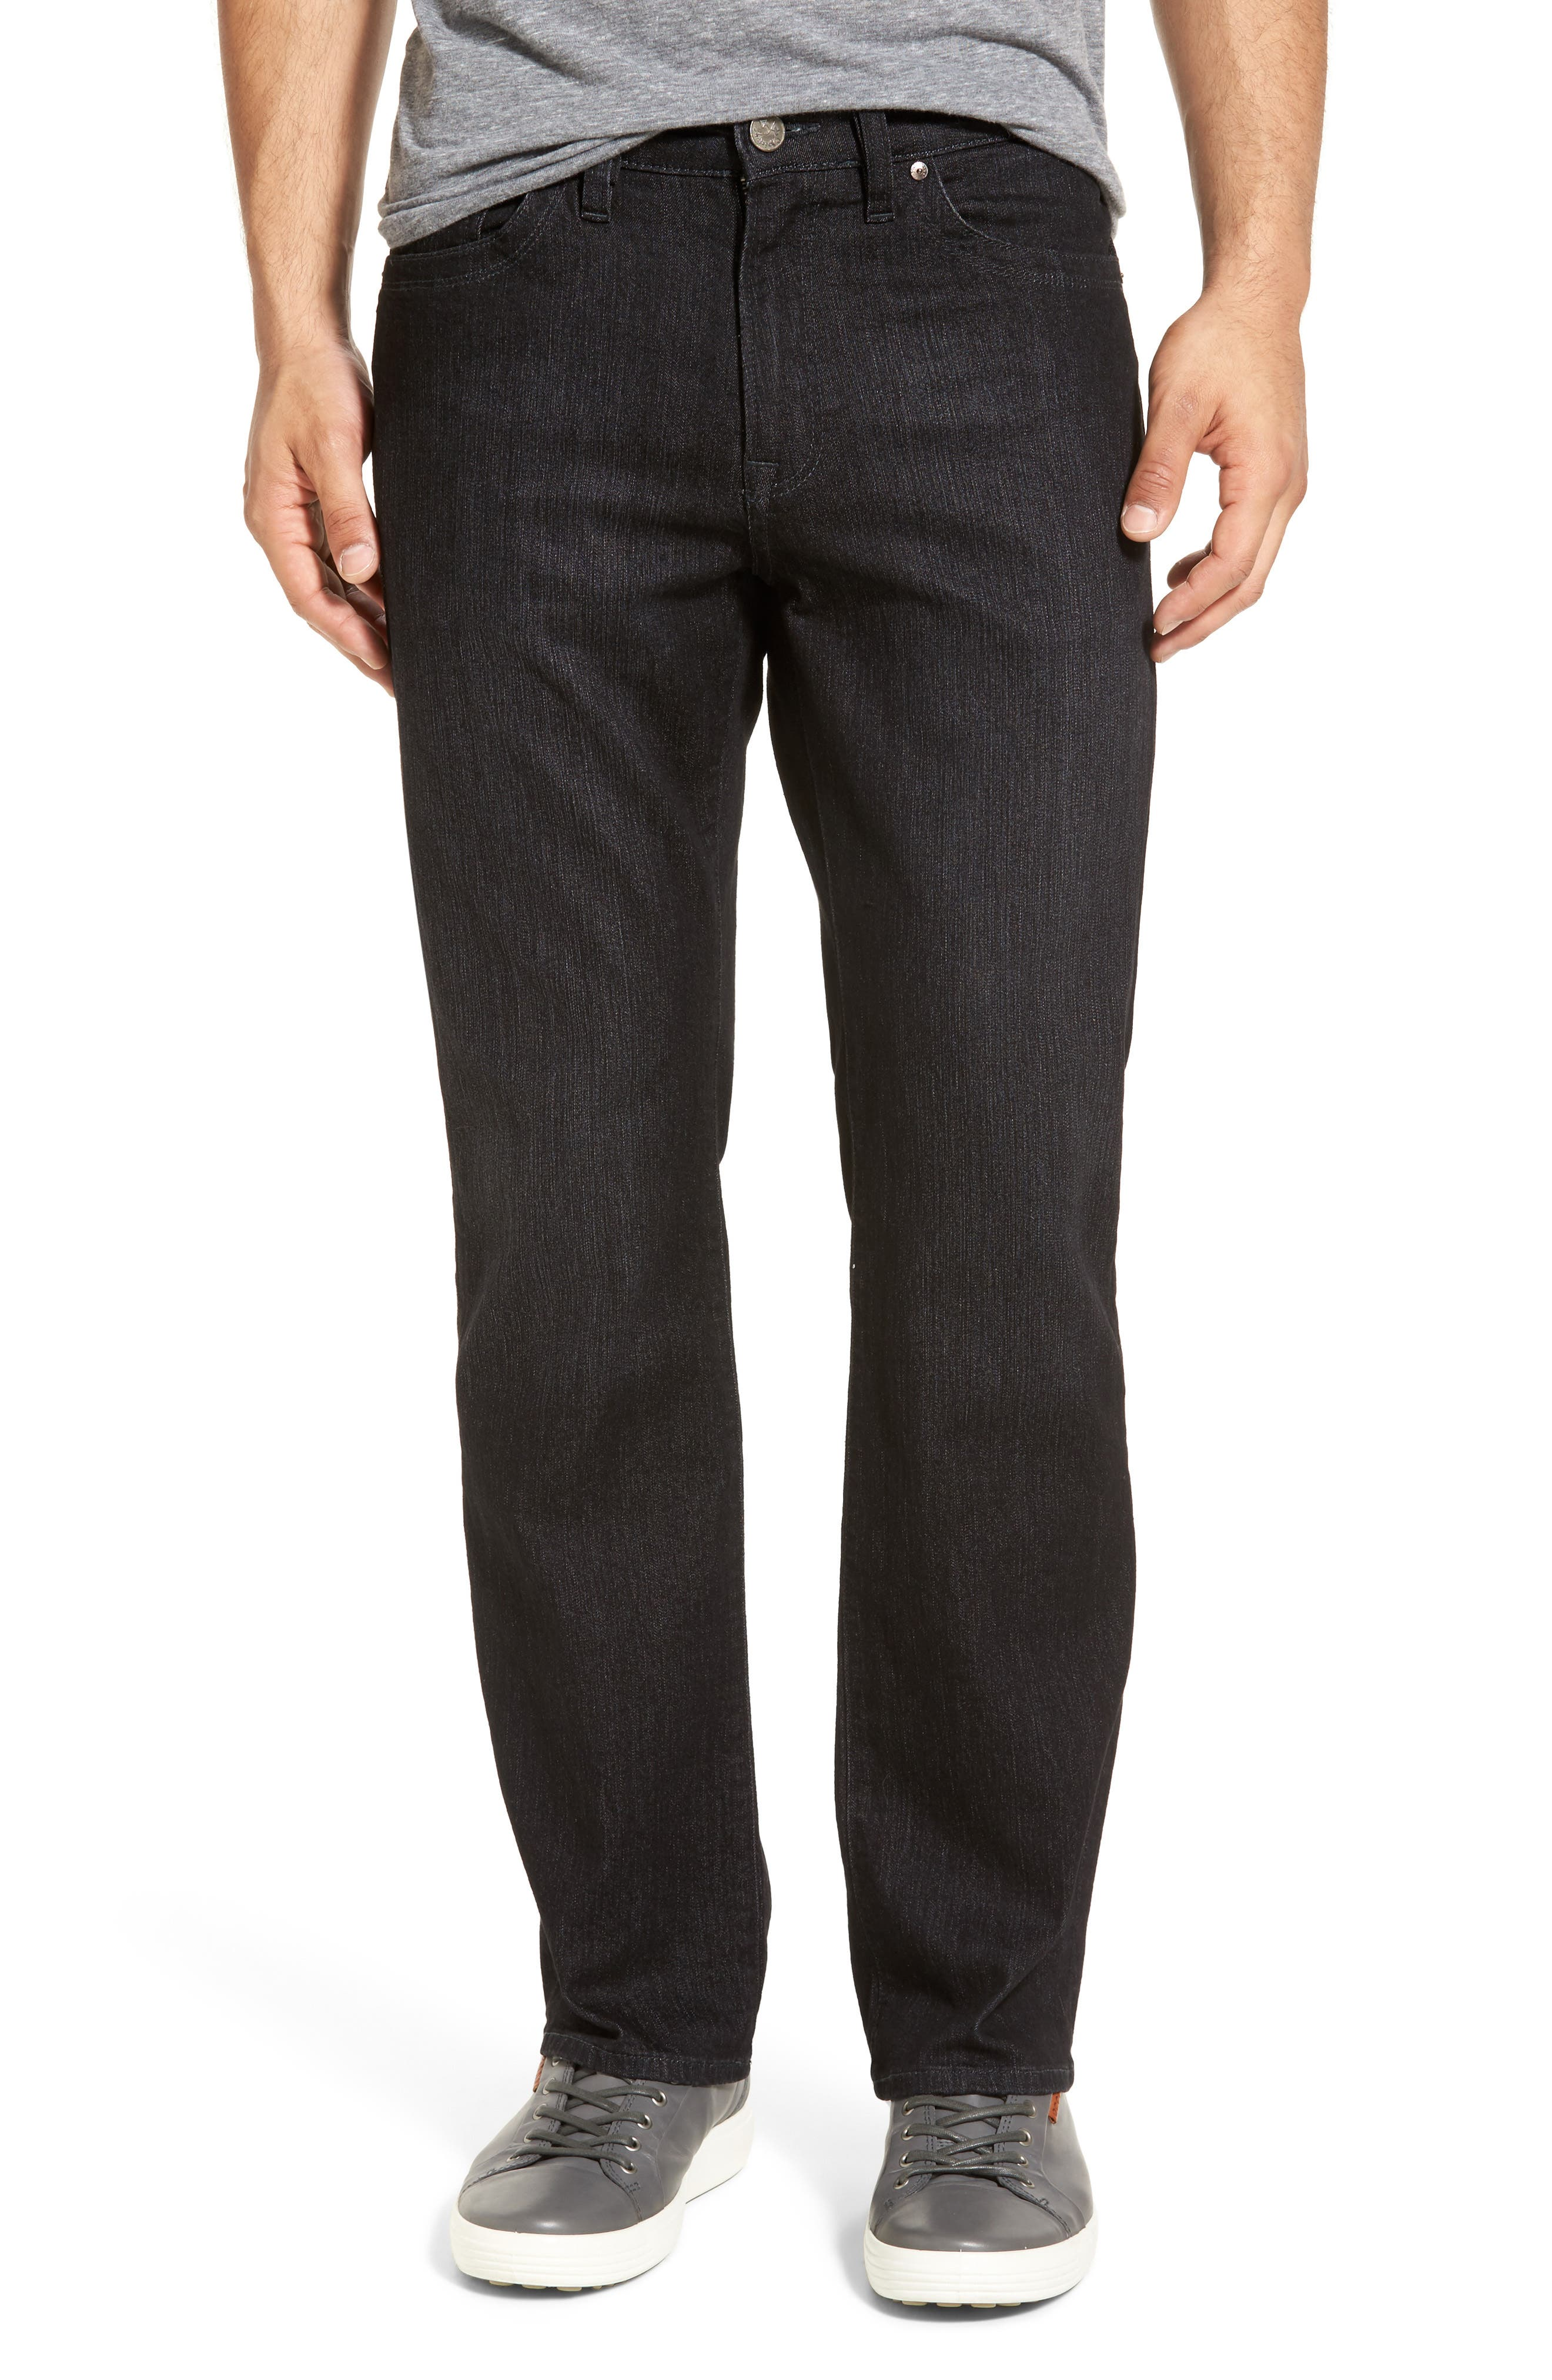 34 HERITAGE,                             'Charisma' Classic Relaxed Fit,                             Main thumbnail 1, color,                             CHARCOAL